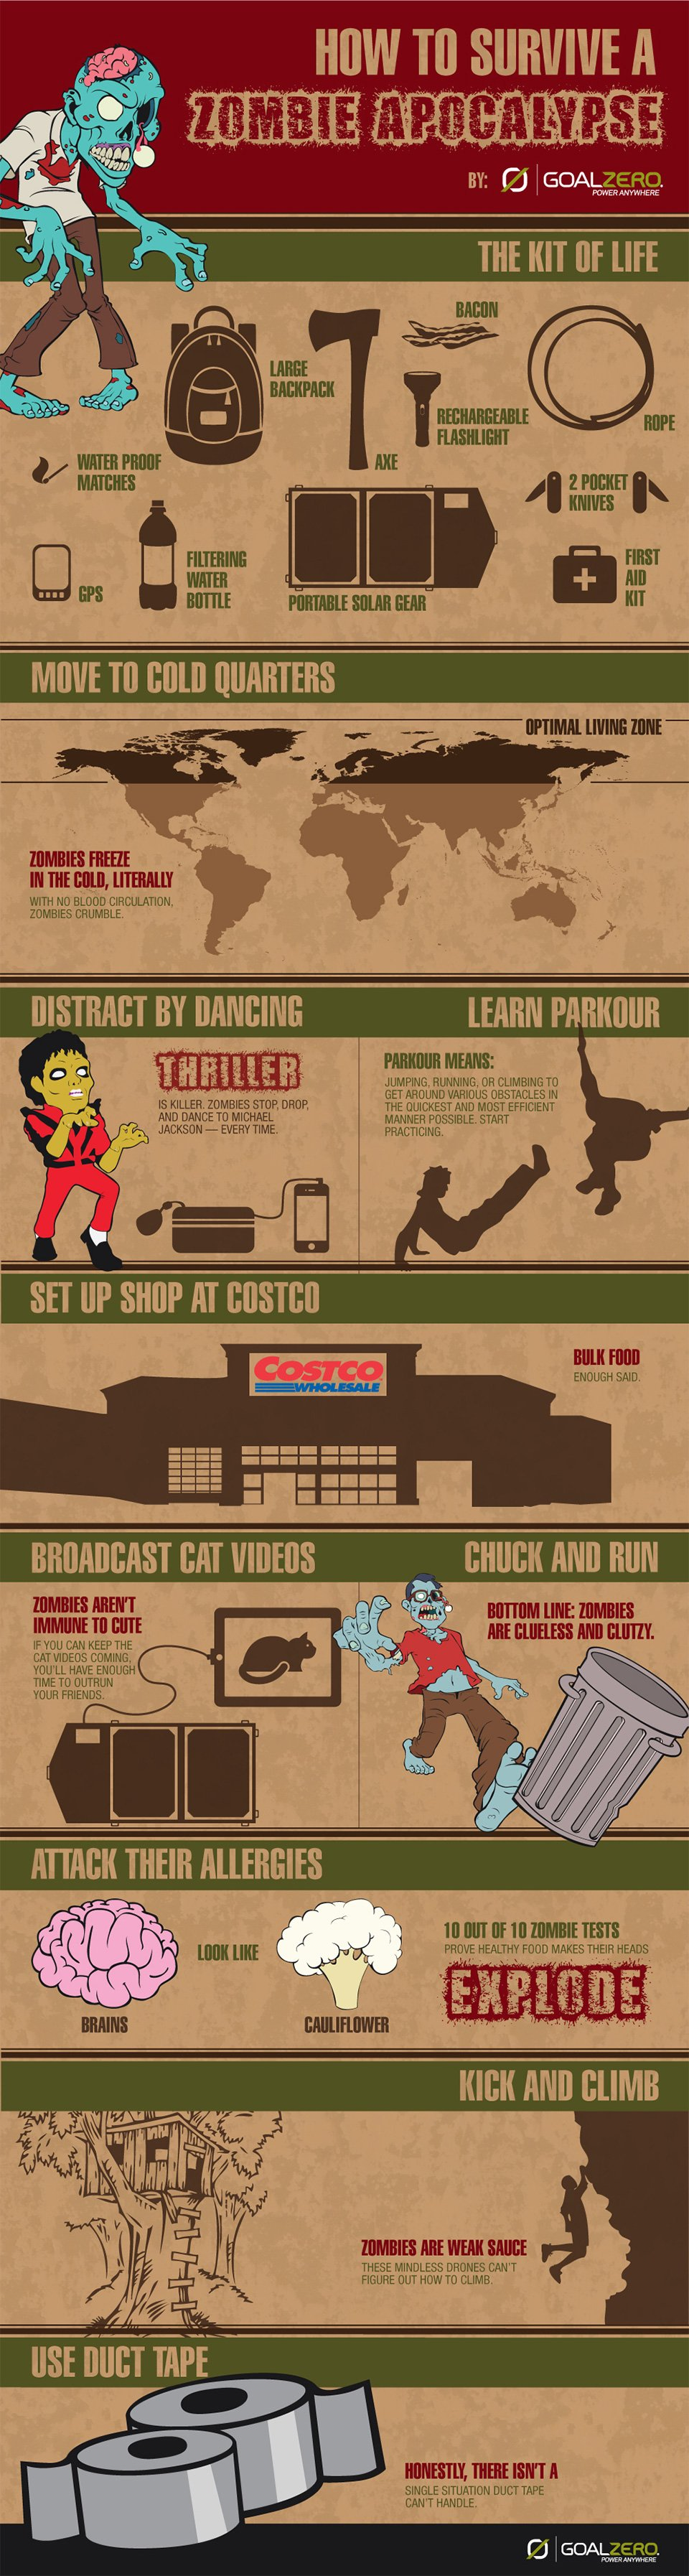 Infographic: How to Survive a Zombie Apocalypse